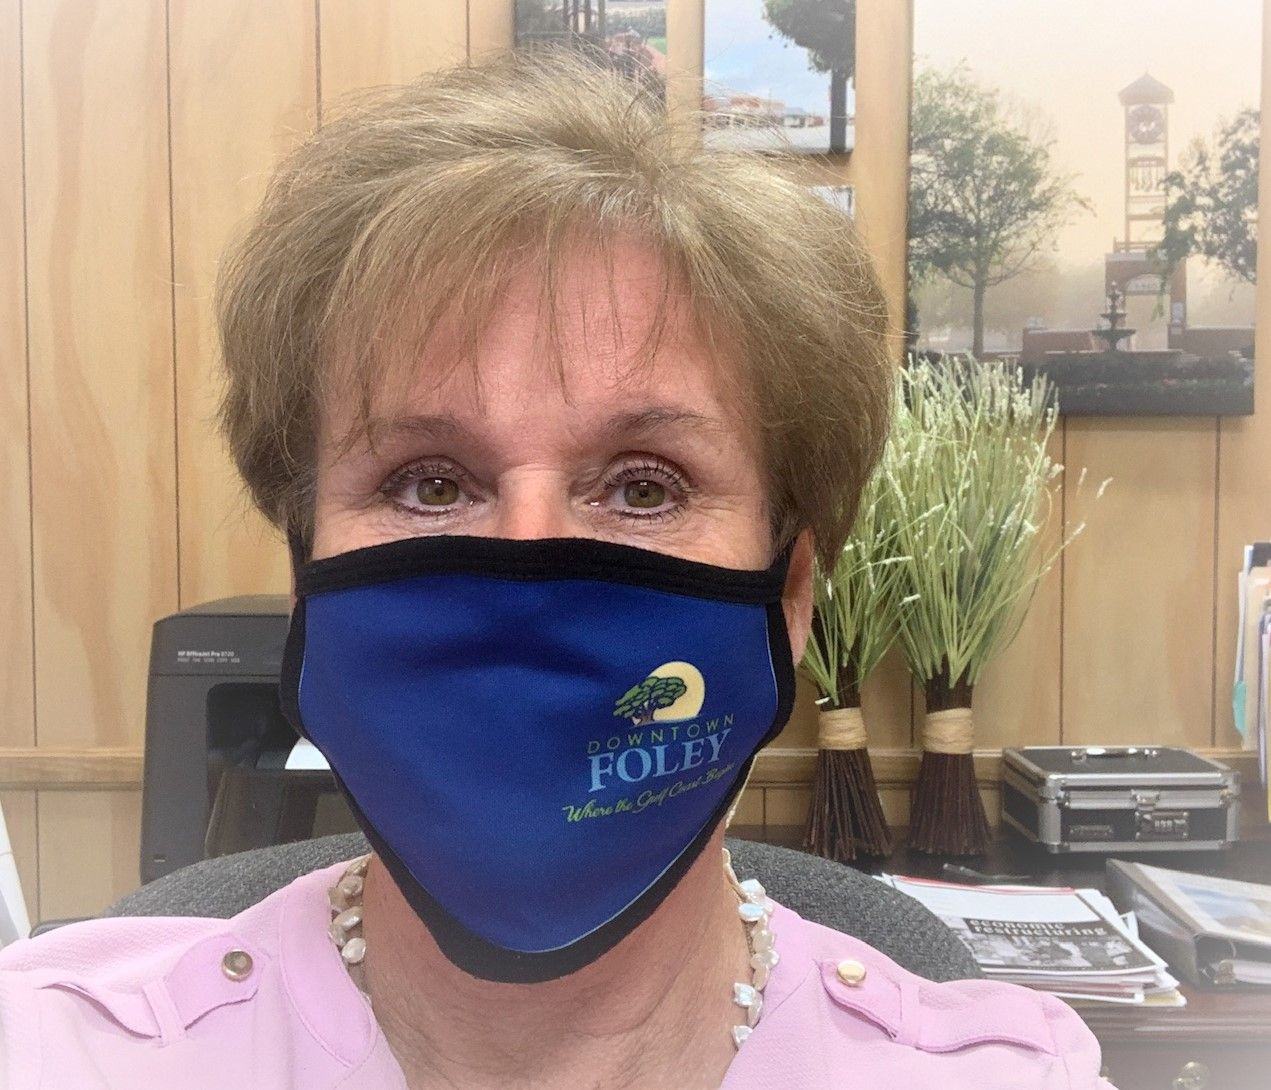 Downtown Foley Face mask  Image